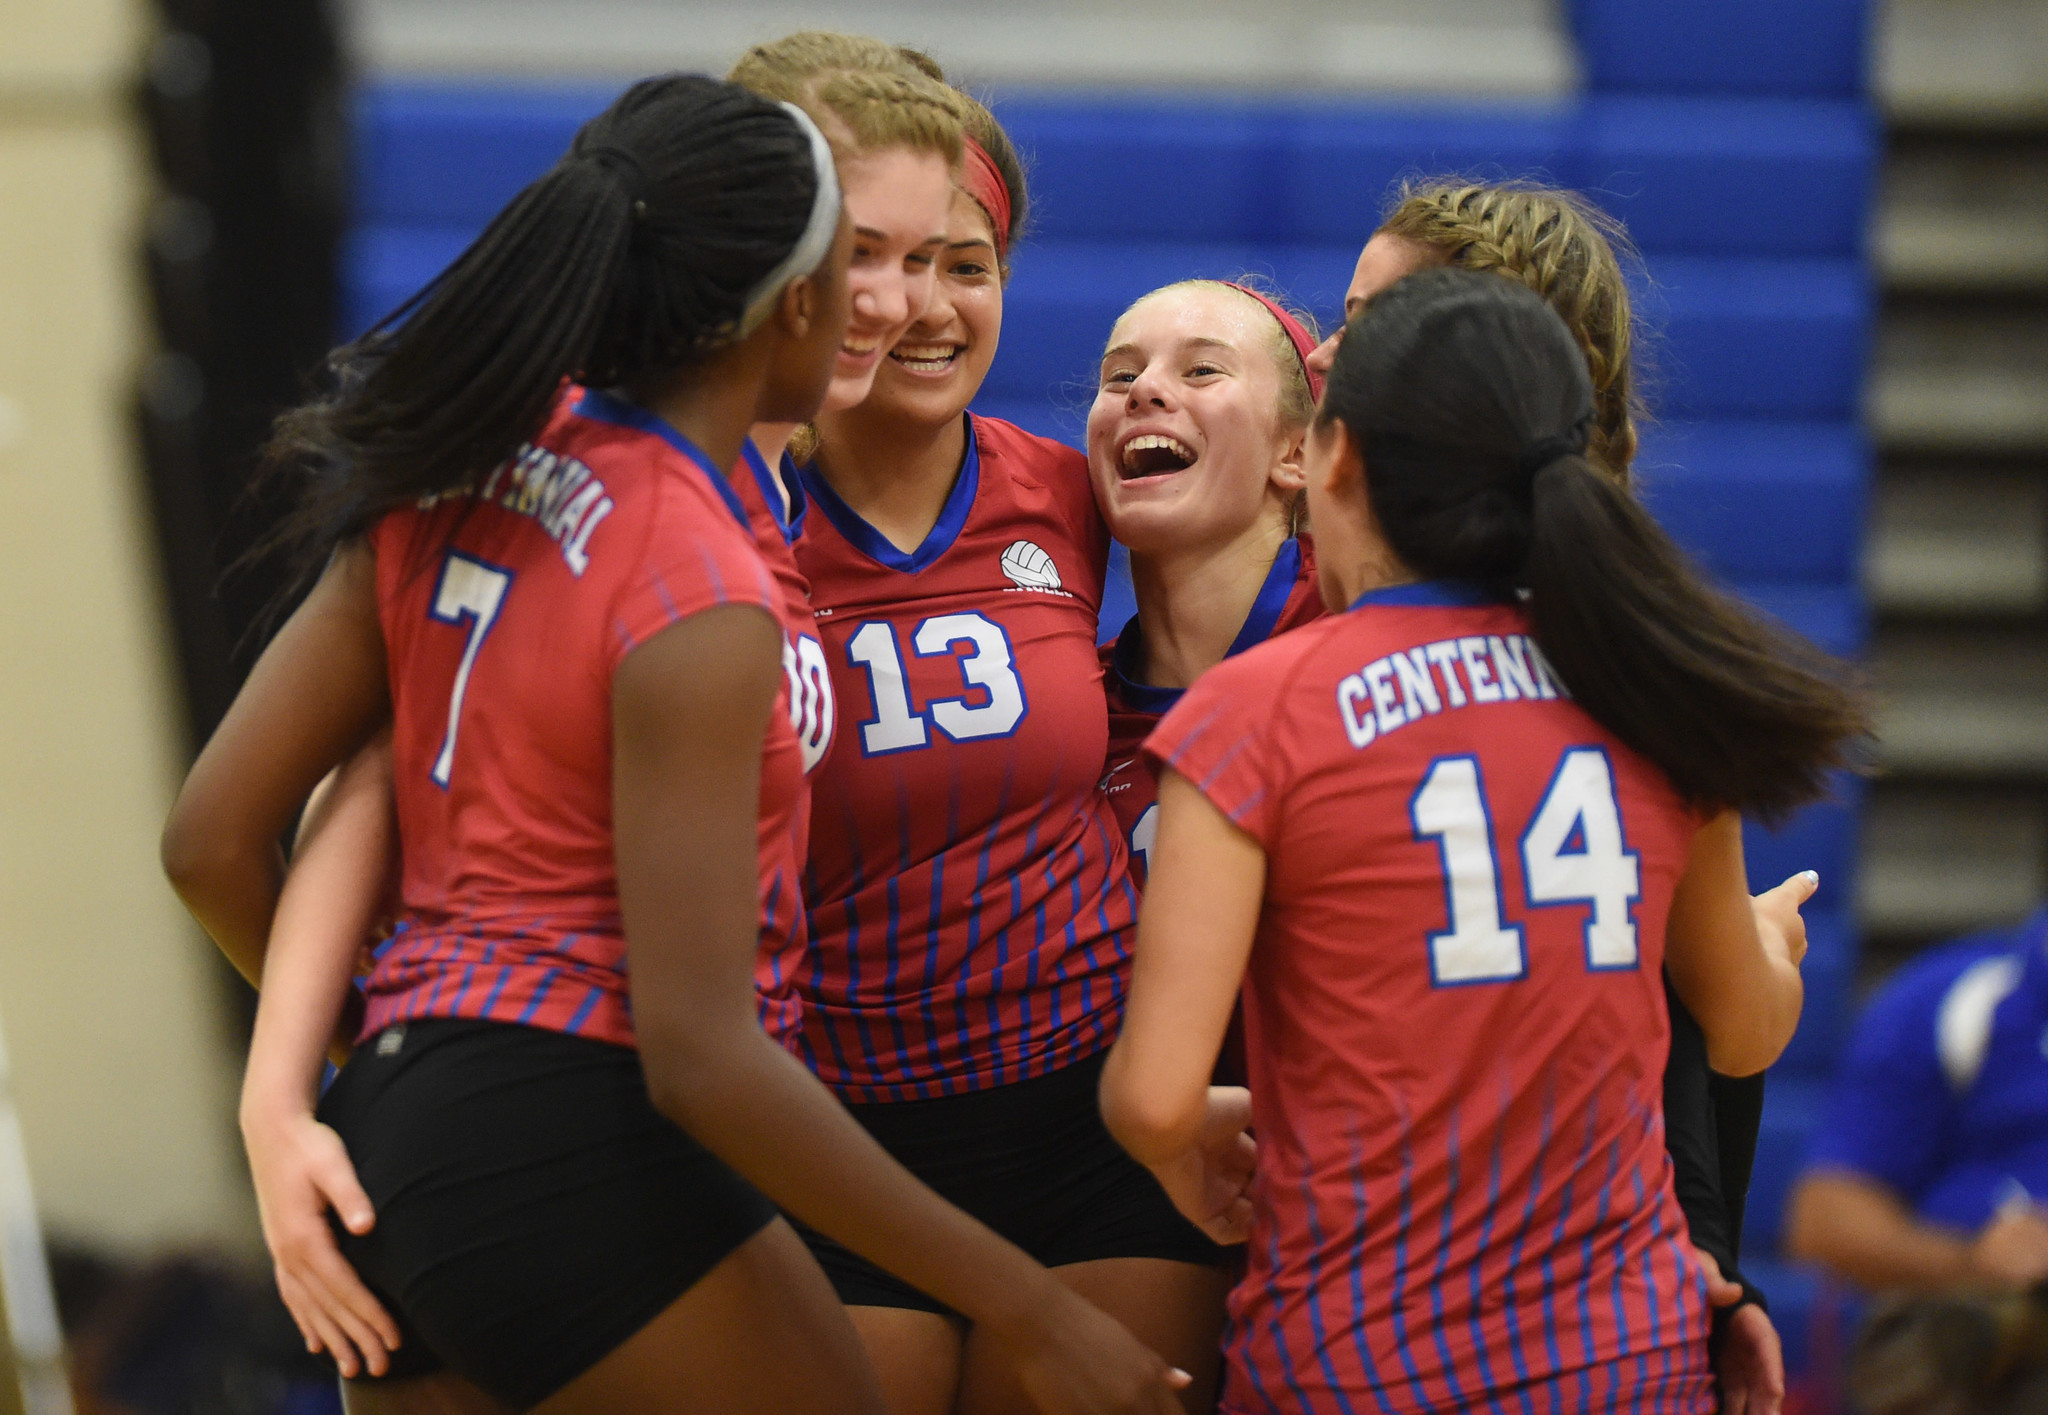 Centennial rolls River Hill in volleyball season opener ...